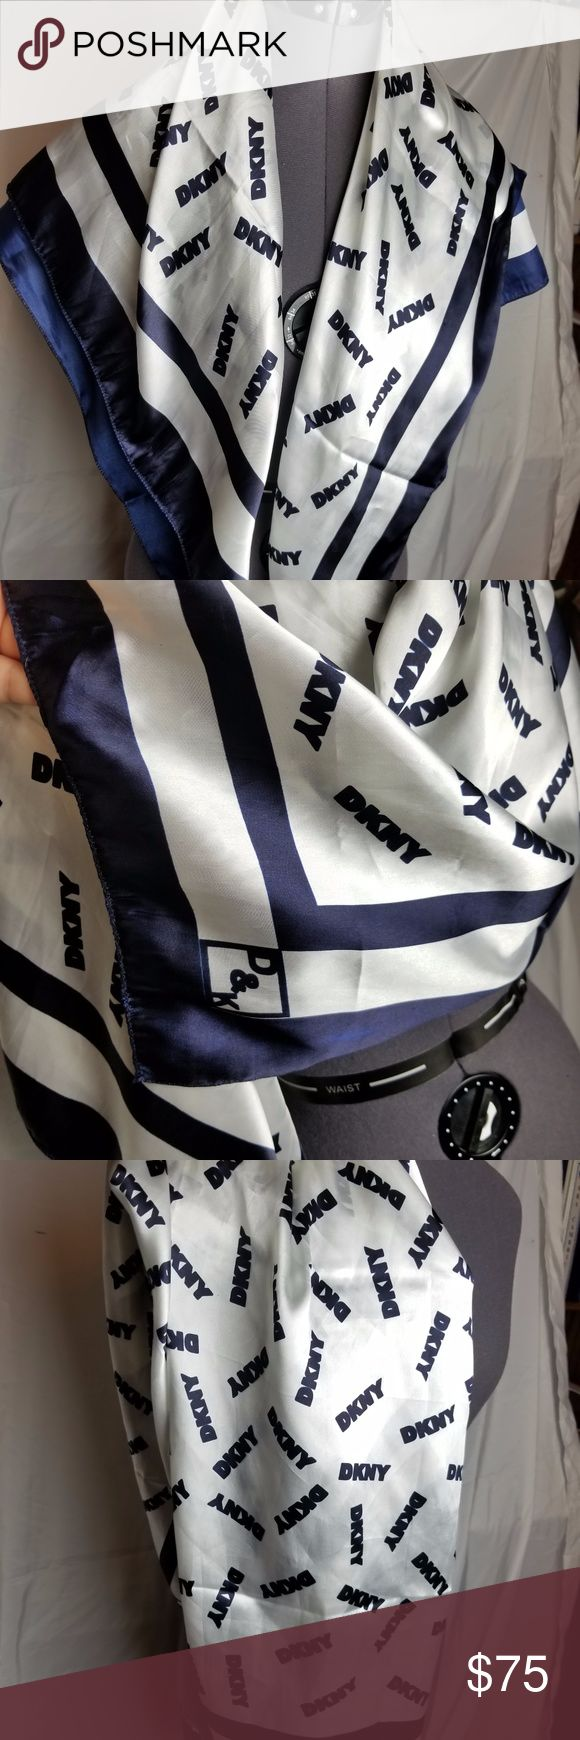 Large silk DKNY scarf Large silk blue and white scarf from DKNY. Excellent condition, no flaws found. Dkny Accessories Scarves & Wraps